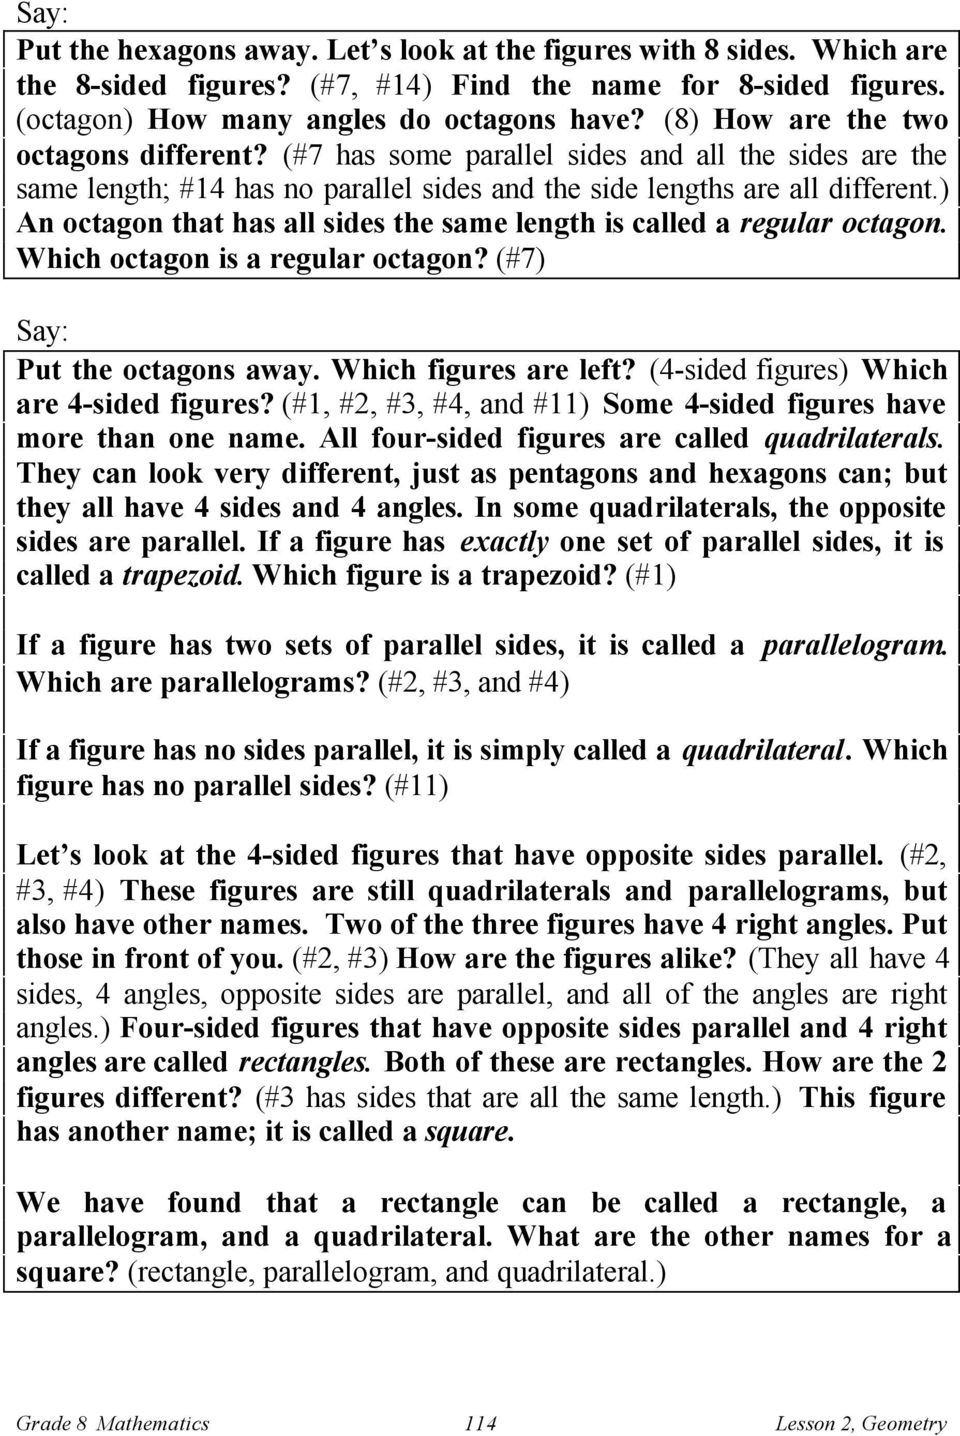 ) An octagon that has all sides the same length is called a regular octagon. Which octagon is a regular octagon? (#7) Put the octagons away. Which figures are left?